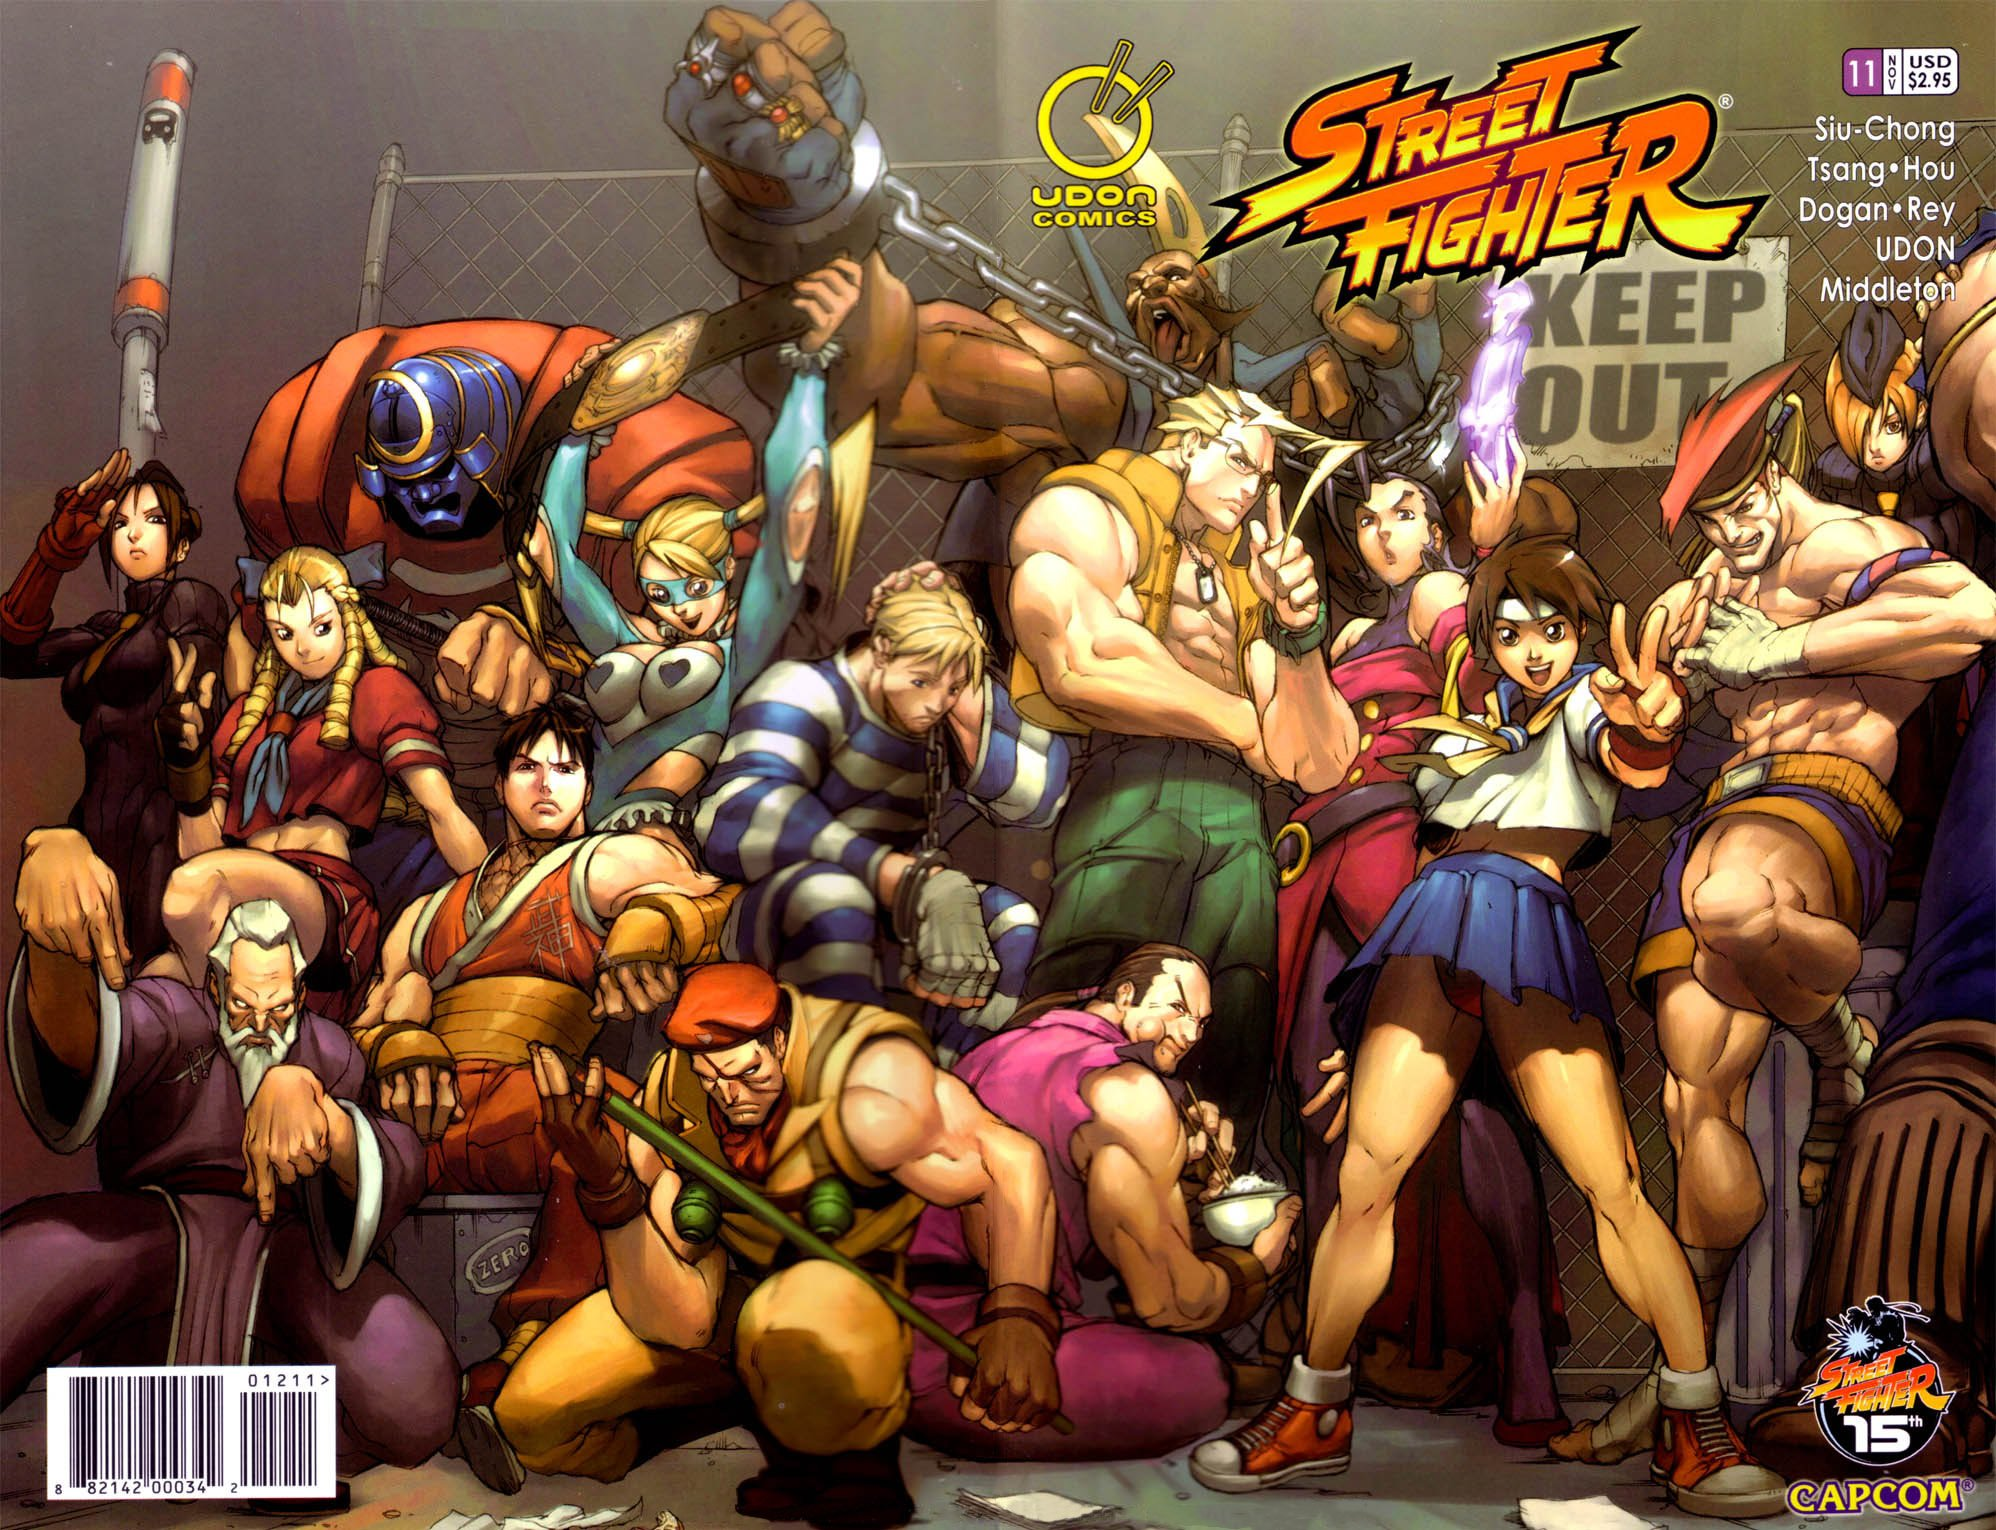 Street Fighter Vol.1 011 (November 2004) (cover a)